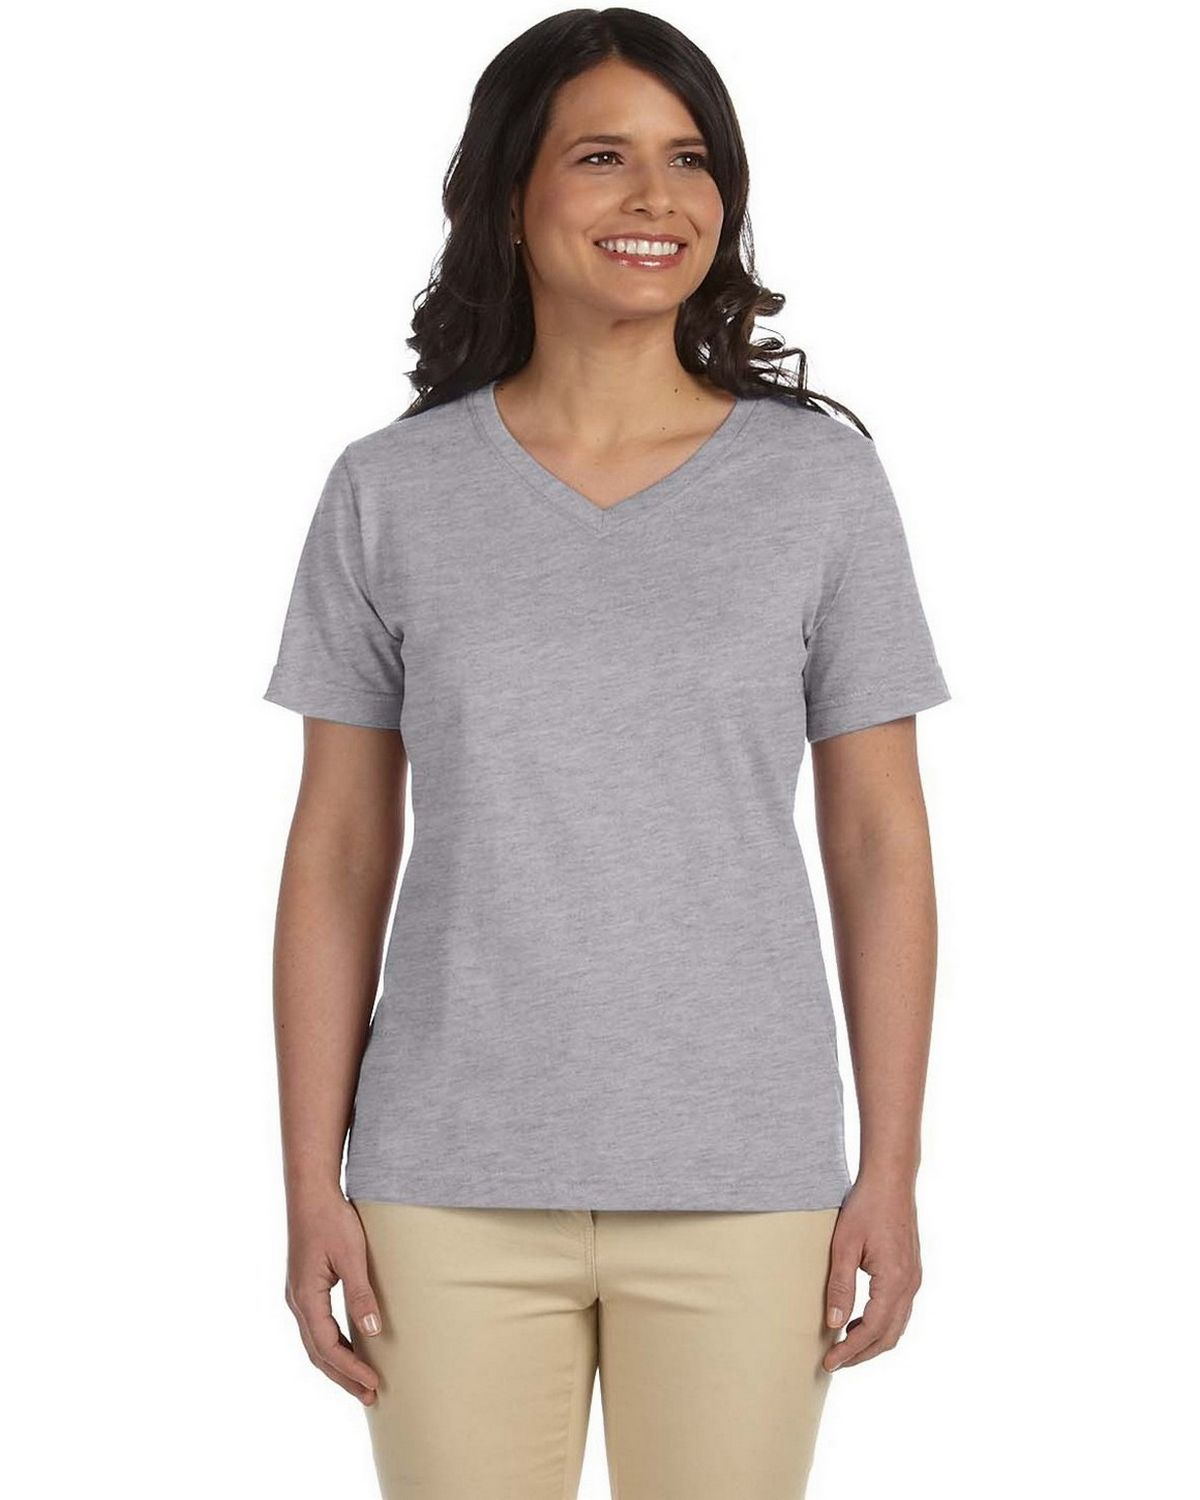 LAT L3587 Ladies Combed Ringspun Jersey T-Shirt - Heather - S L3587